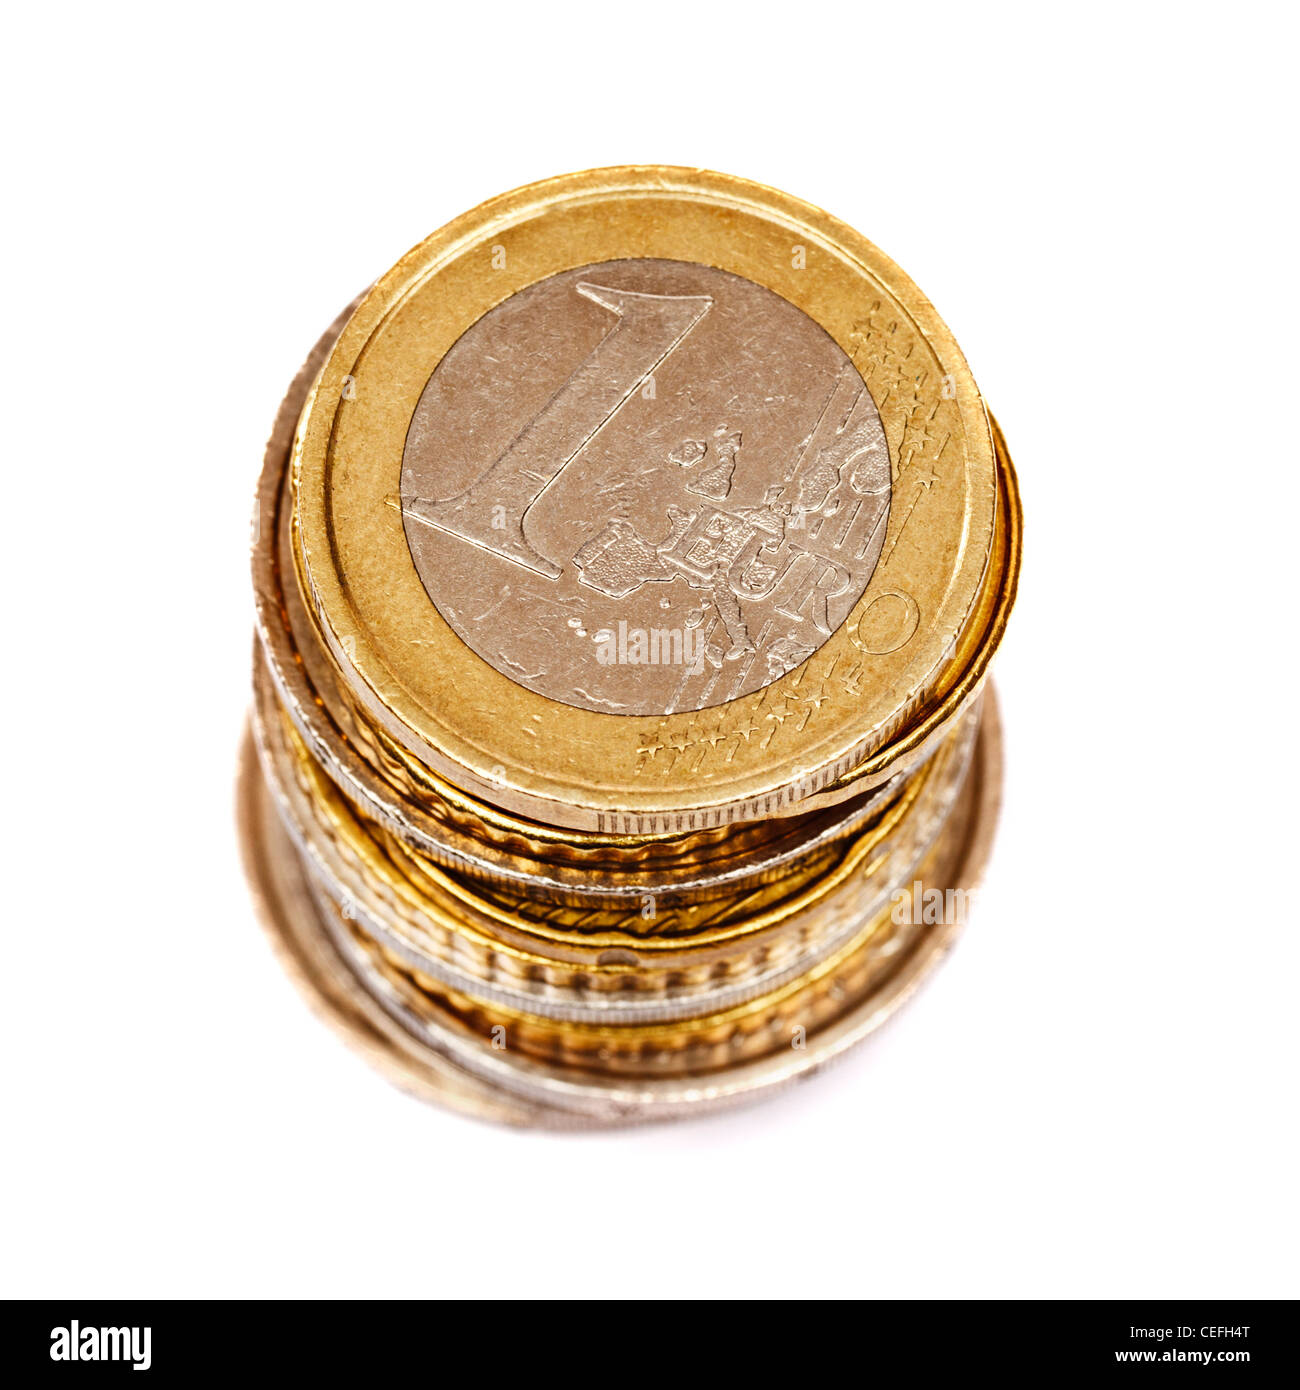 Euro coins stack on white background - Stock Image